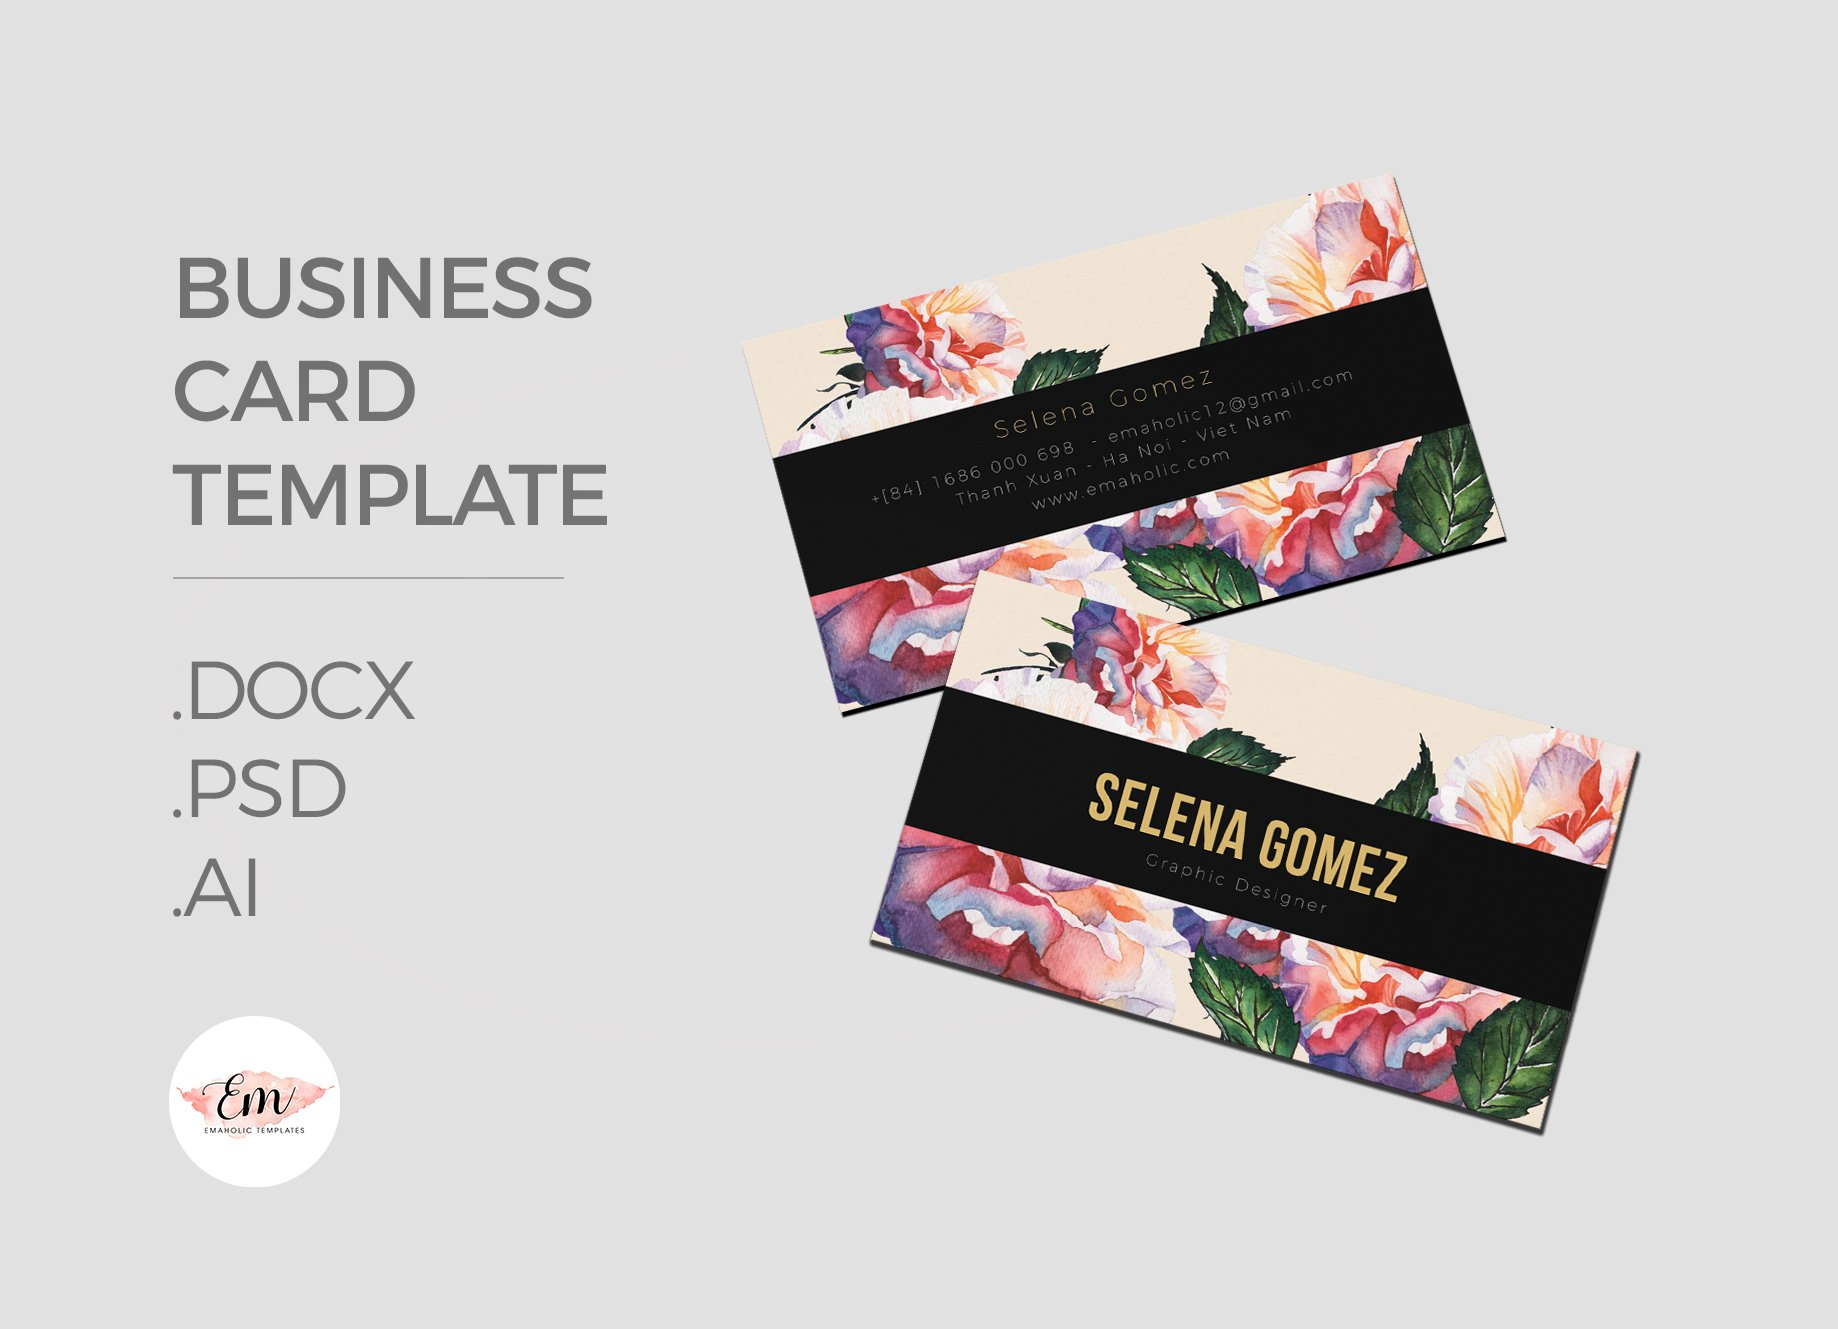 Girly Business Card Template ~ Business Card Templates ~ Creative ...